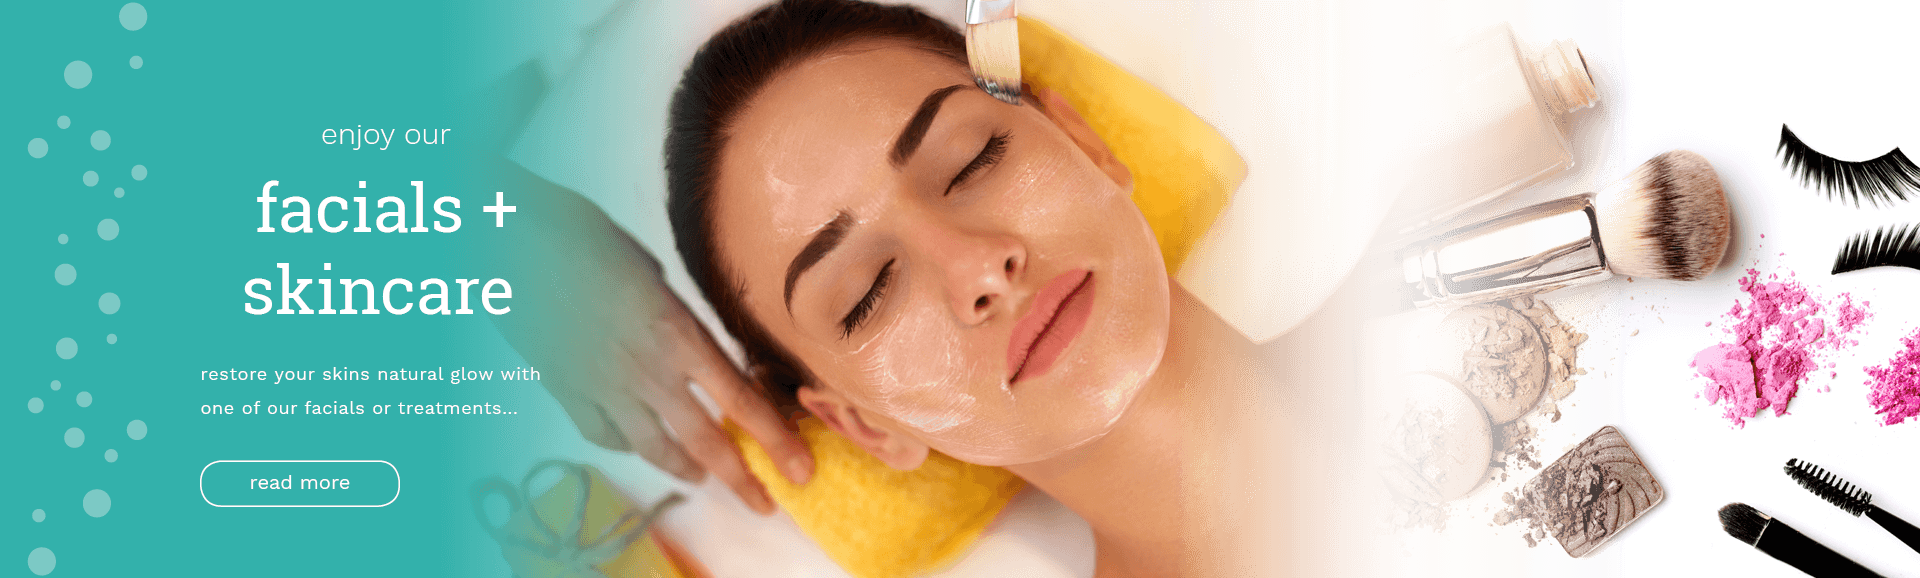 freckle-face-skincare-and-facials